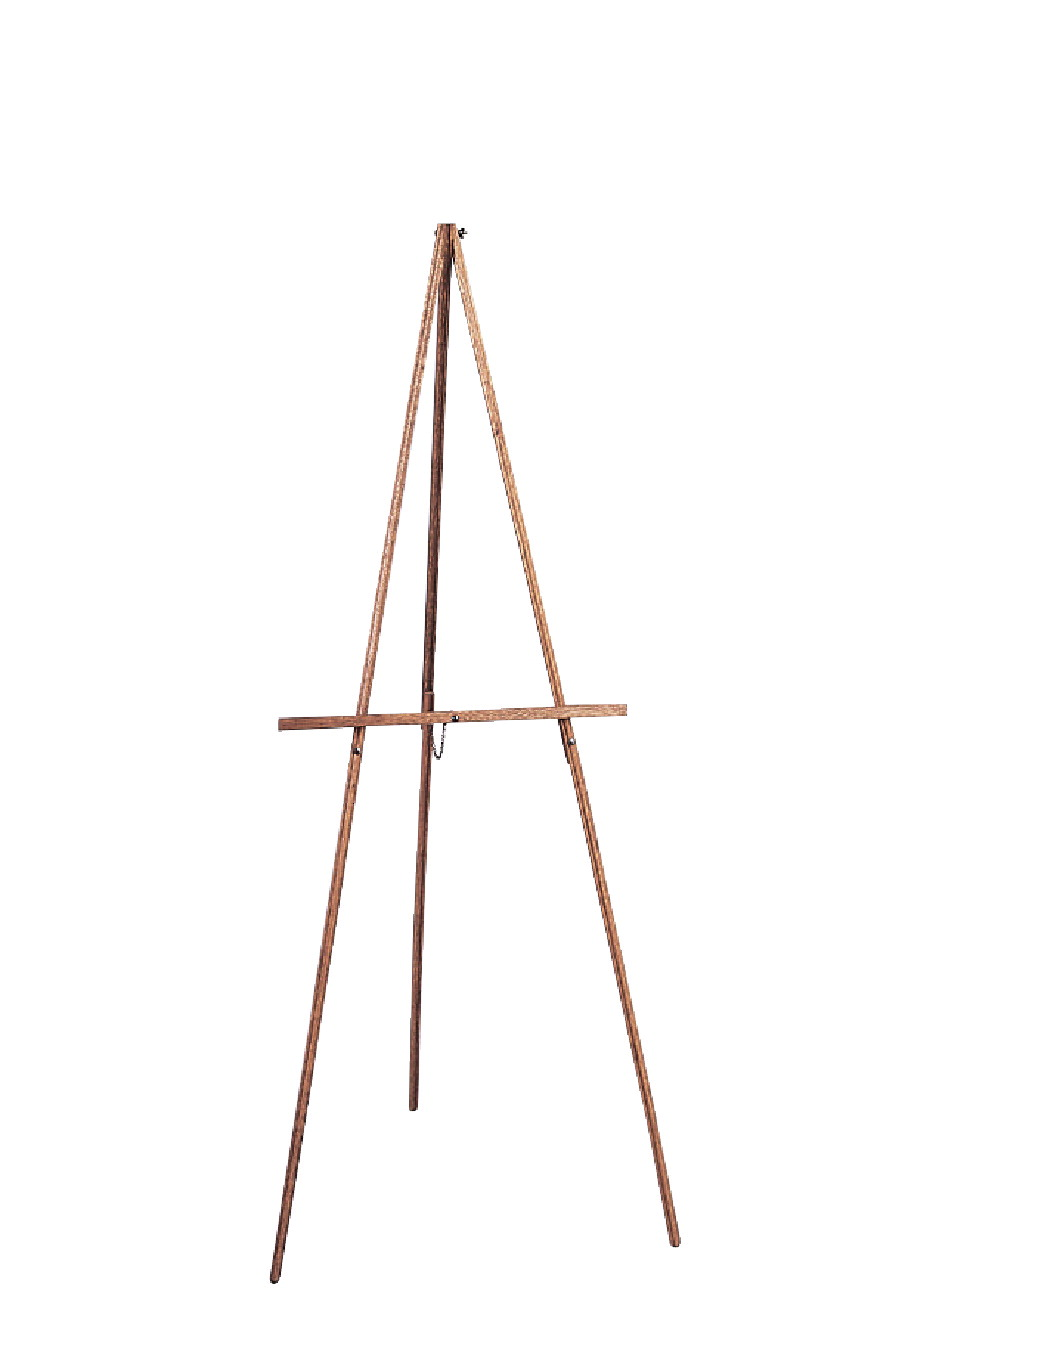 Sax Thrifty Folding Easel, 66 Inches, Hardwood